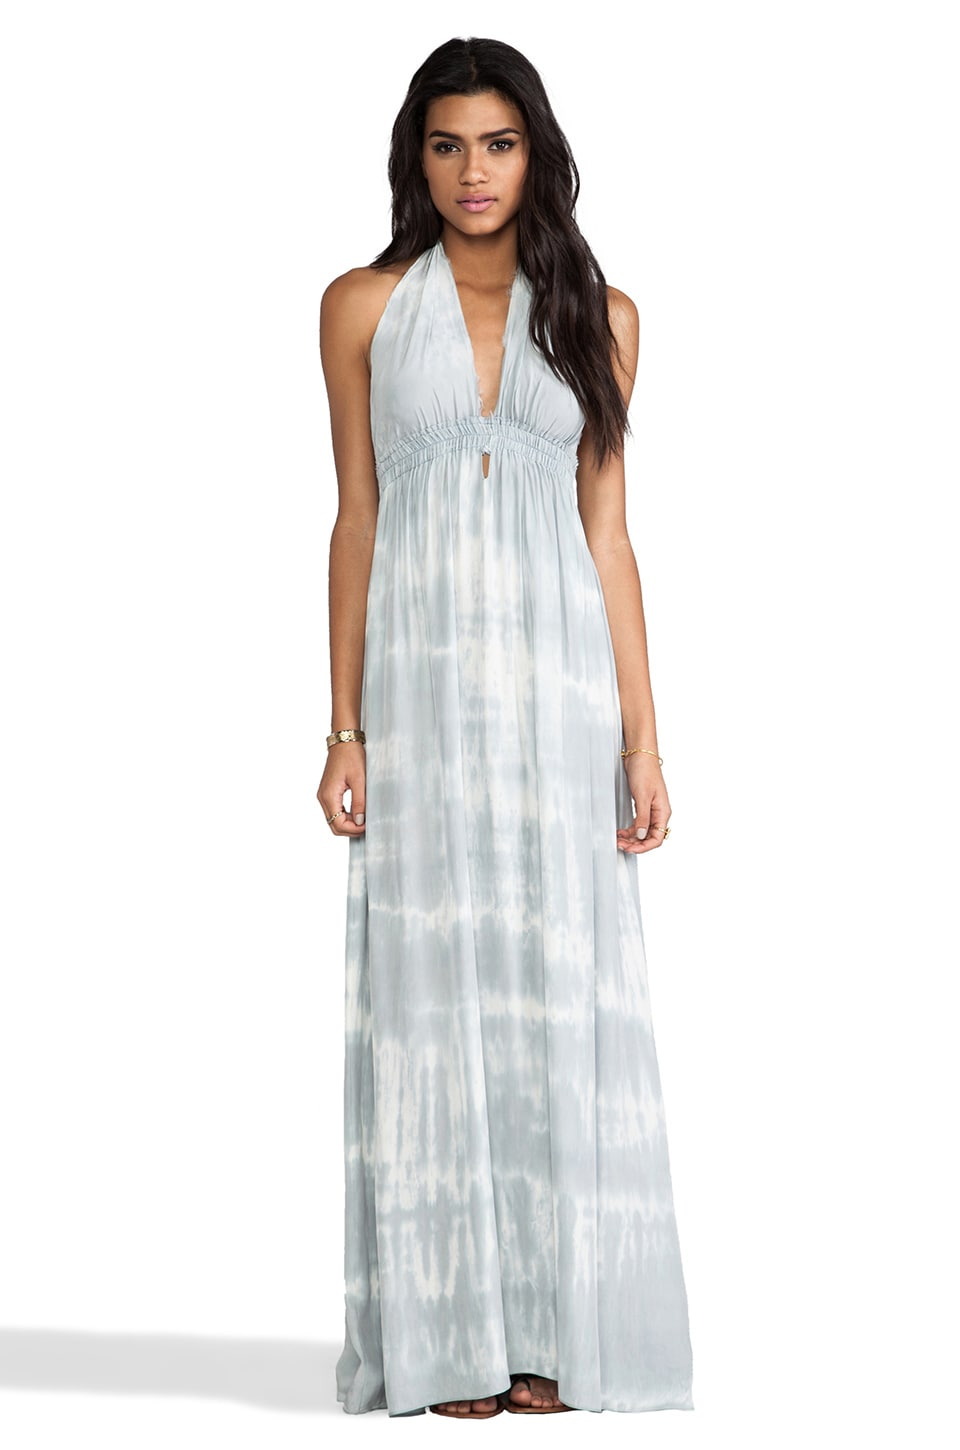 LoveShackFancy Love Shack Fancy Love Maxi Dress in Blue Grey Fall Tie Dye